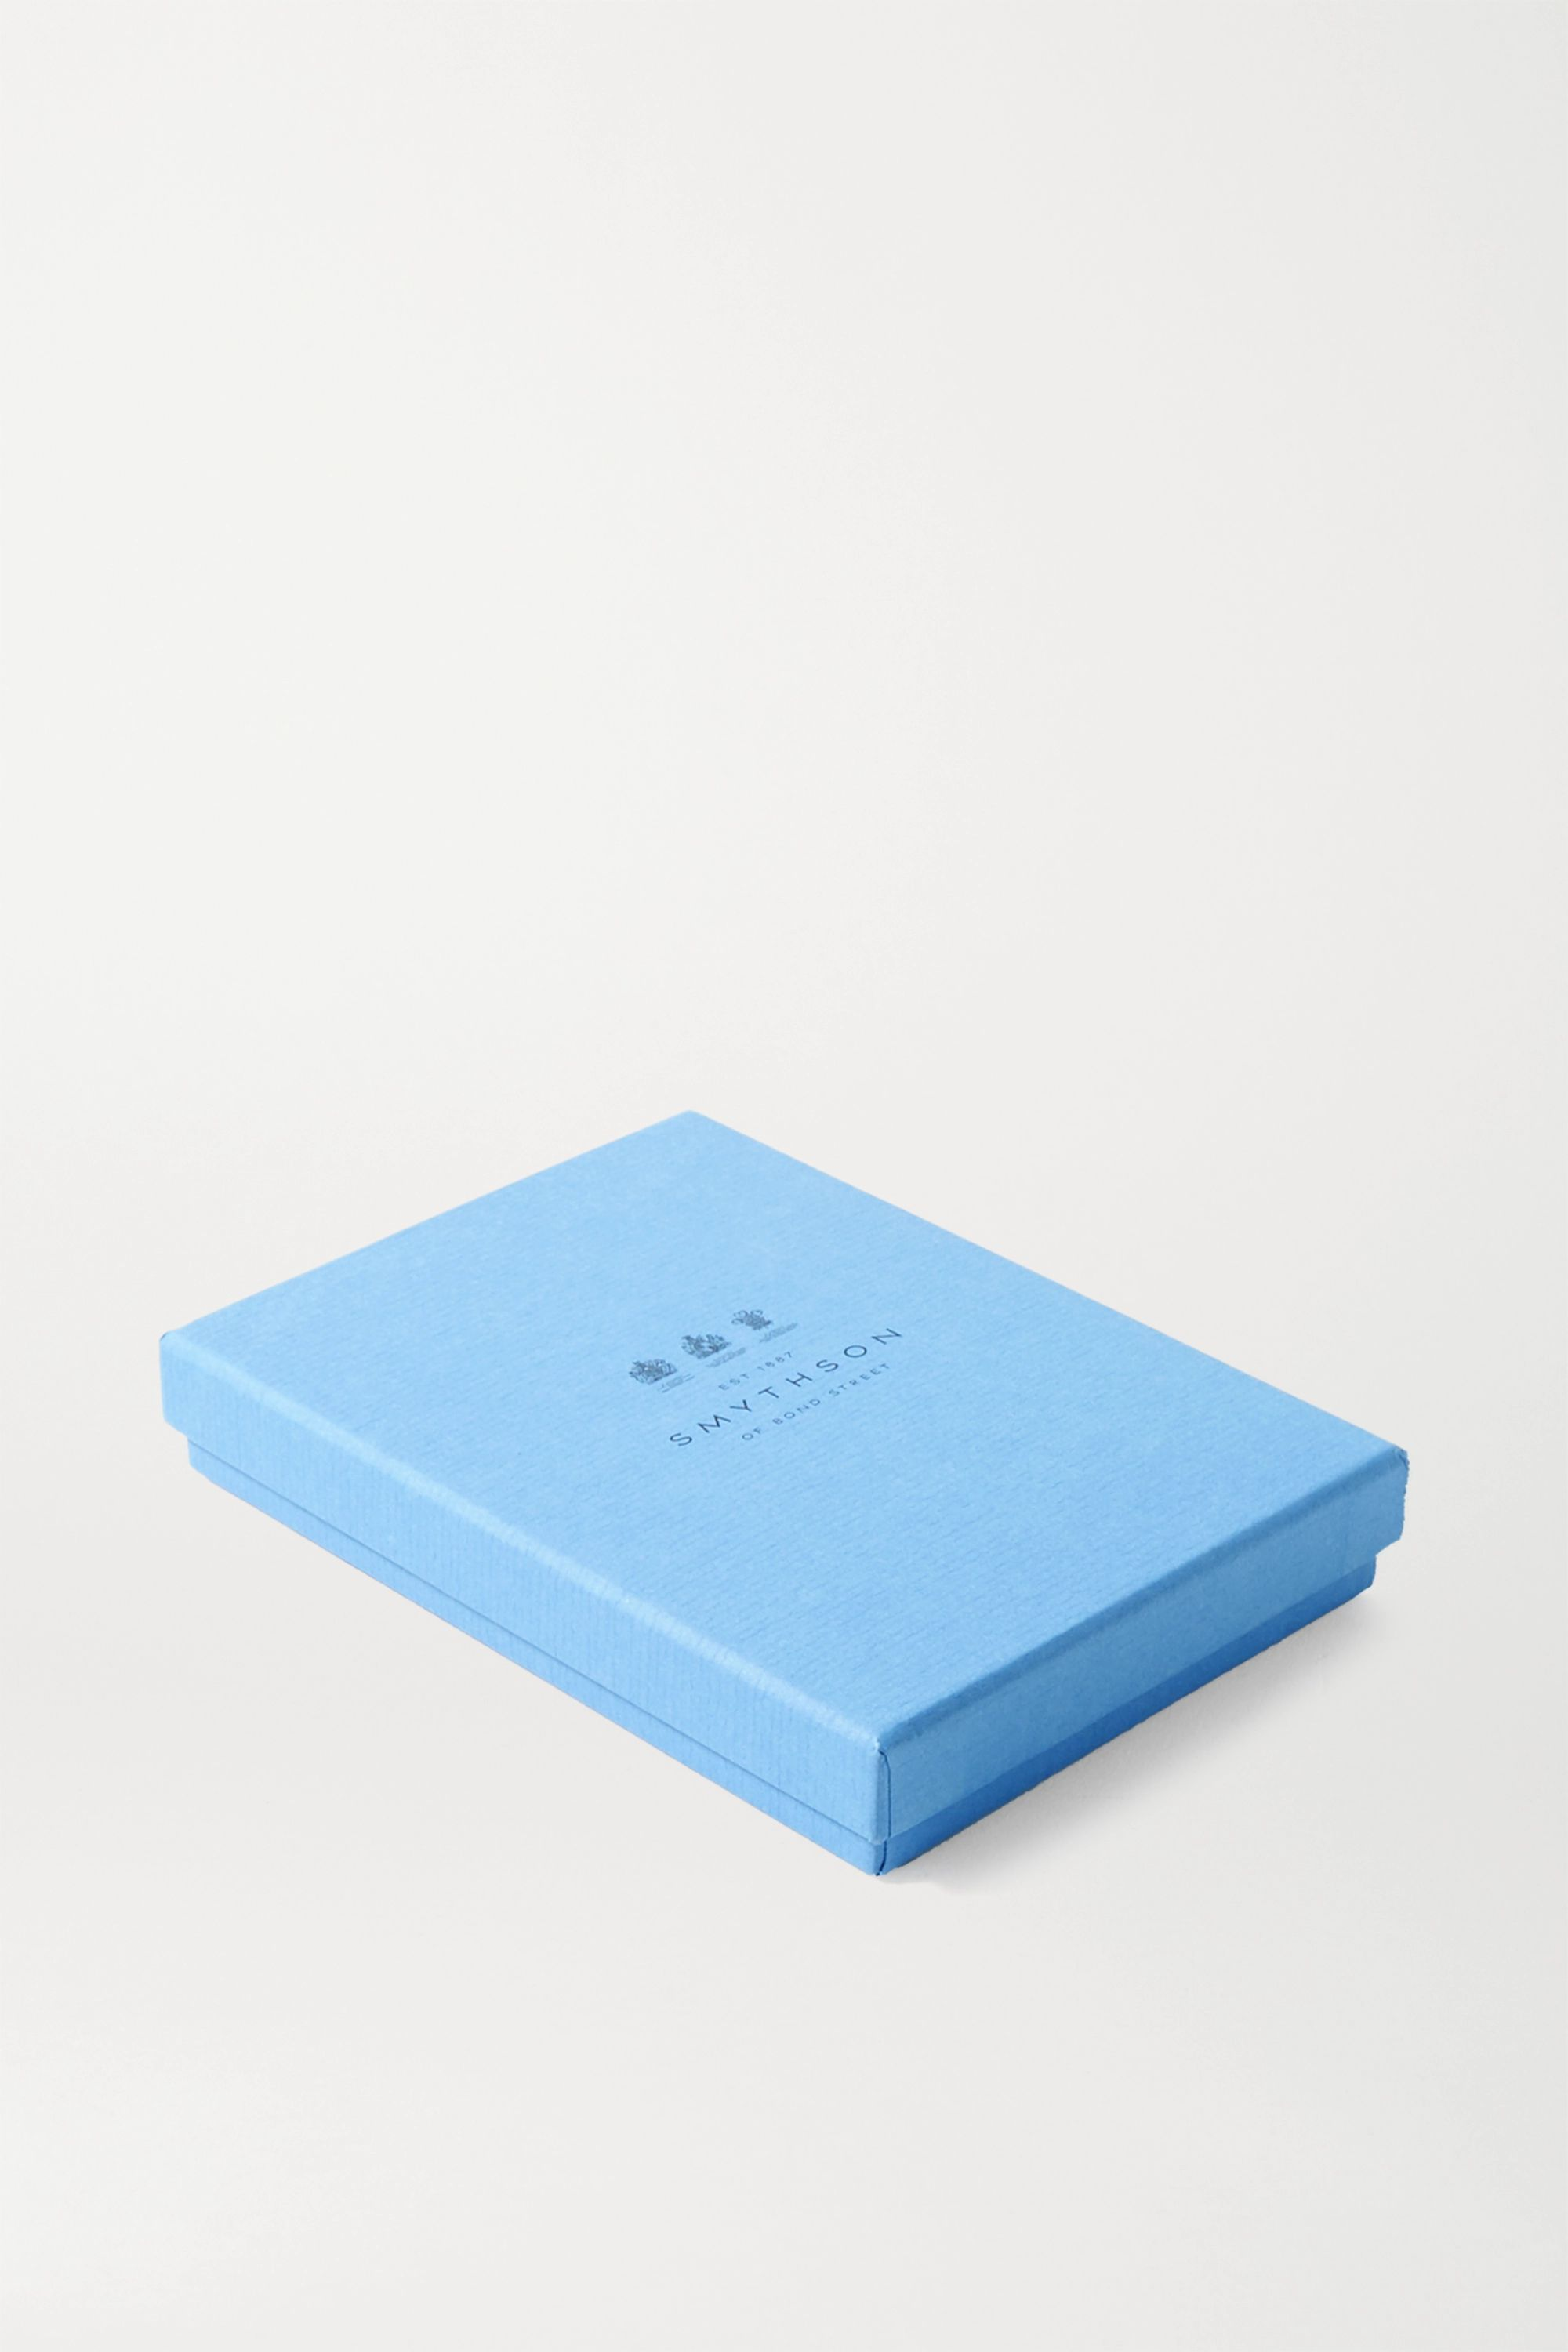 Smythson Panama Inspirations and Ideas Notizbuch aus strukturiertem Leder